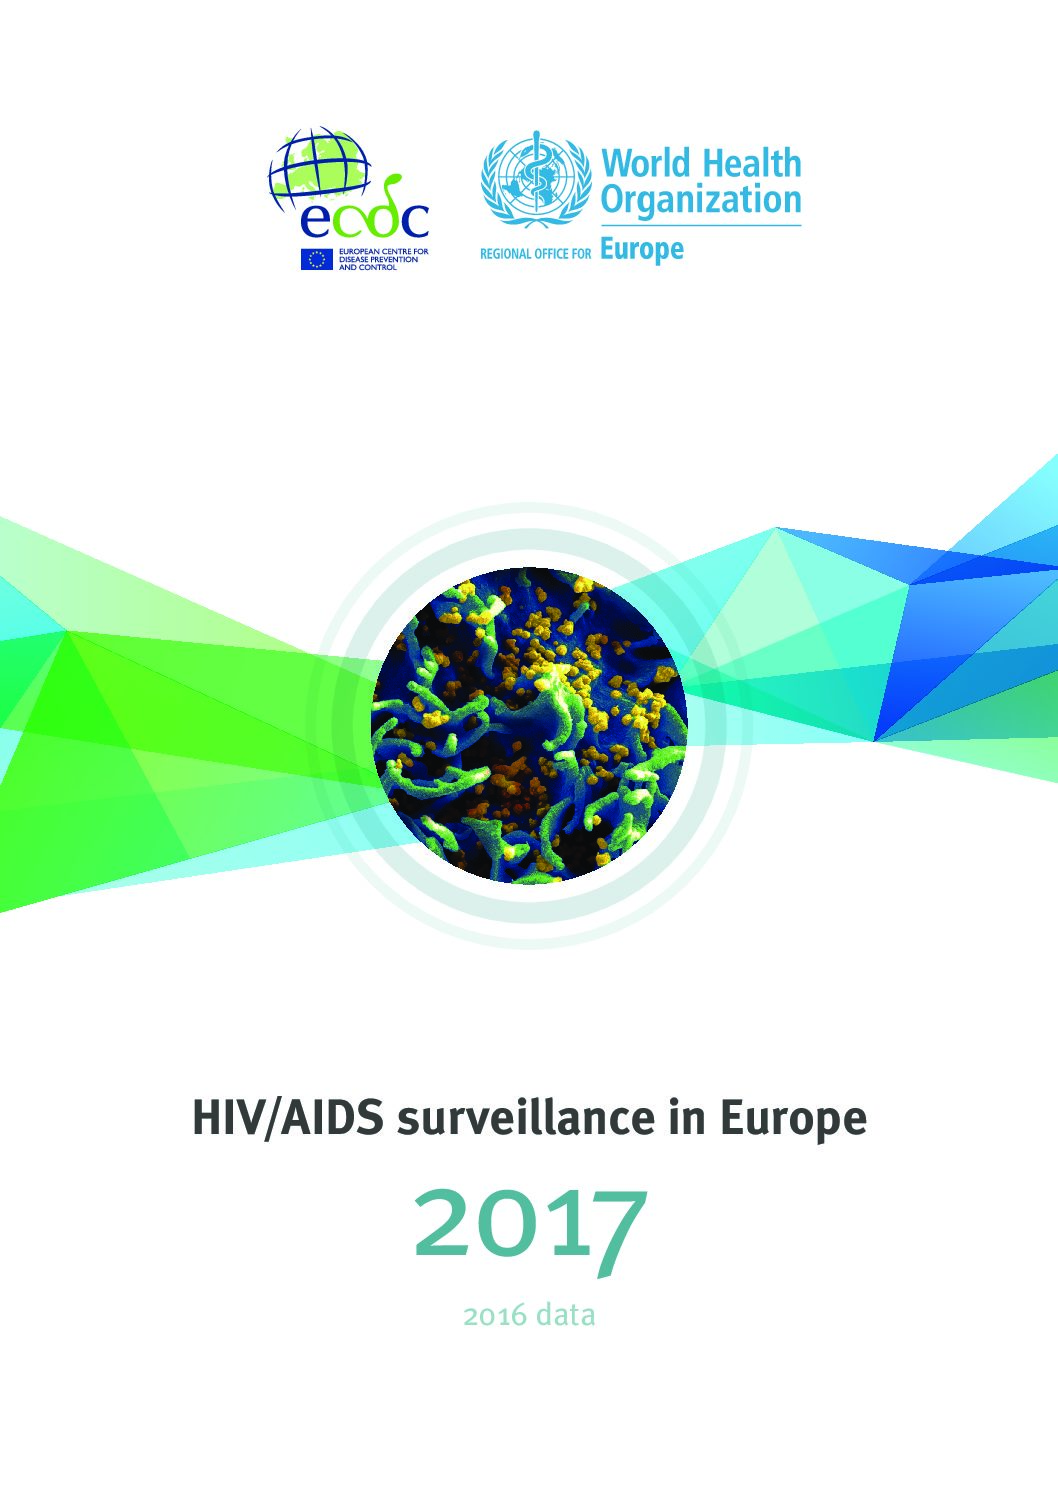 HIV/AIDS surveillance in Europe 2017